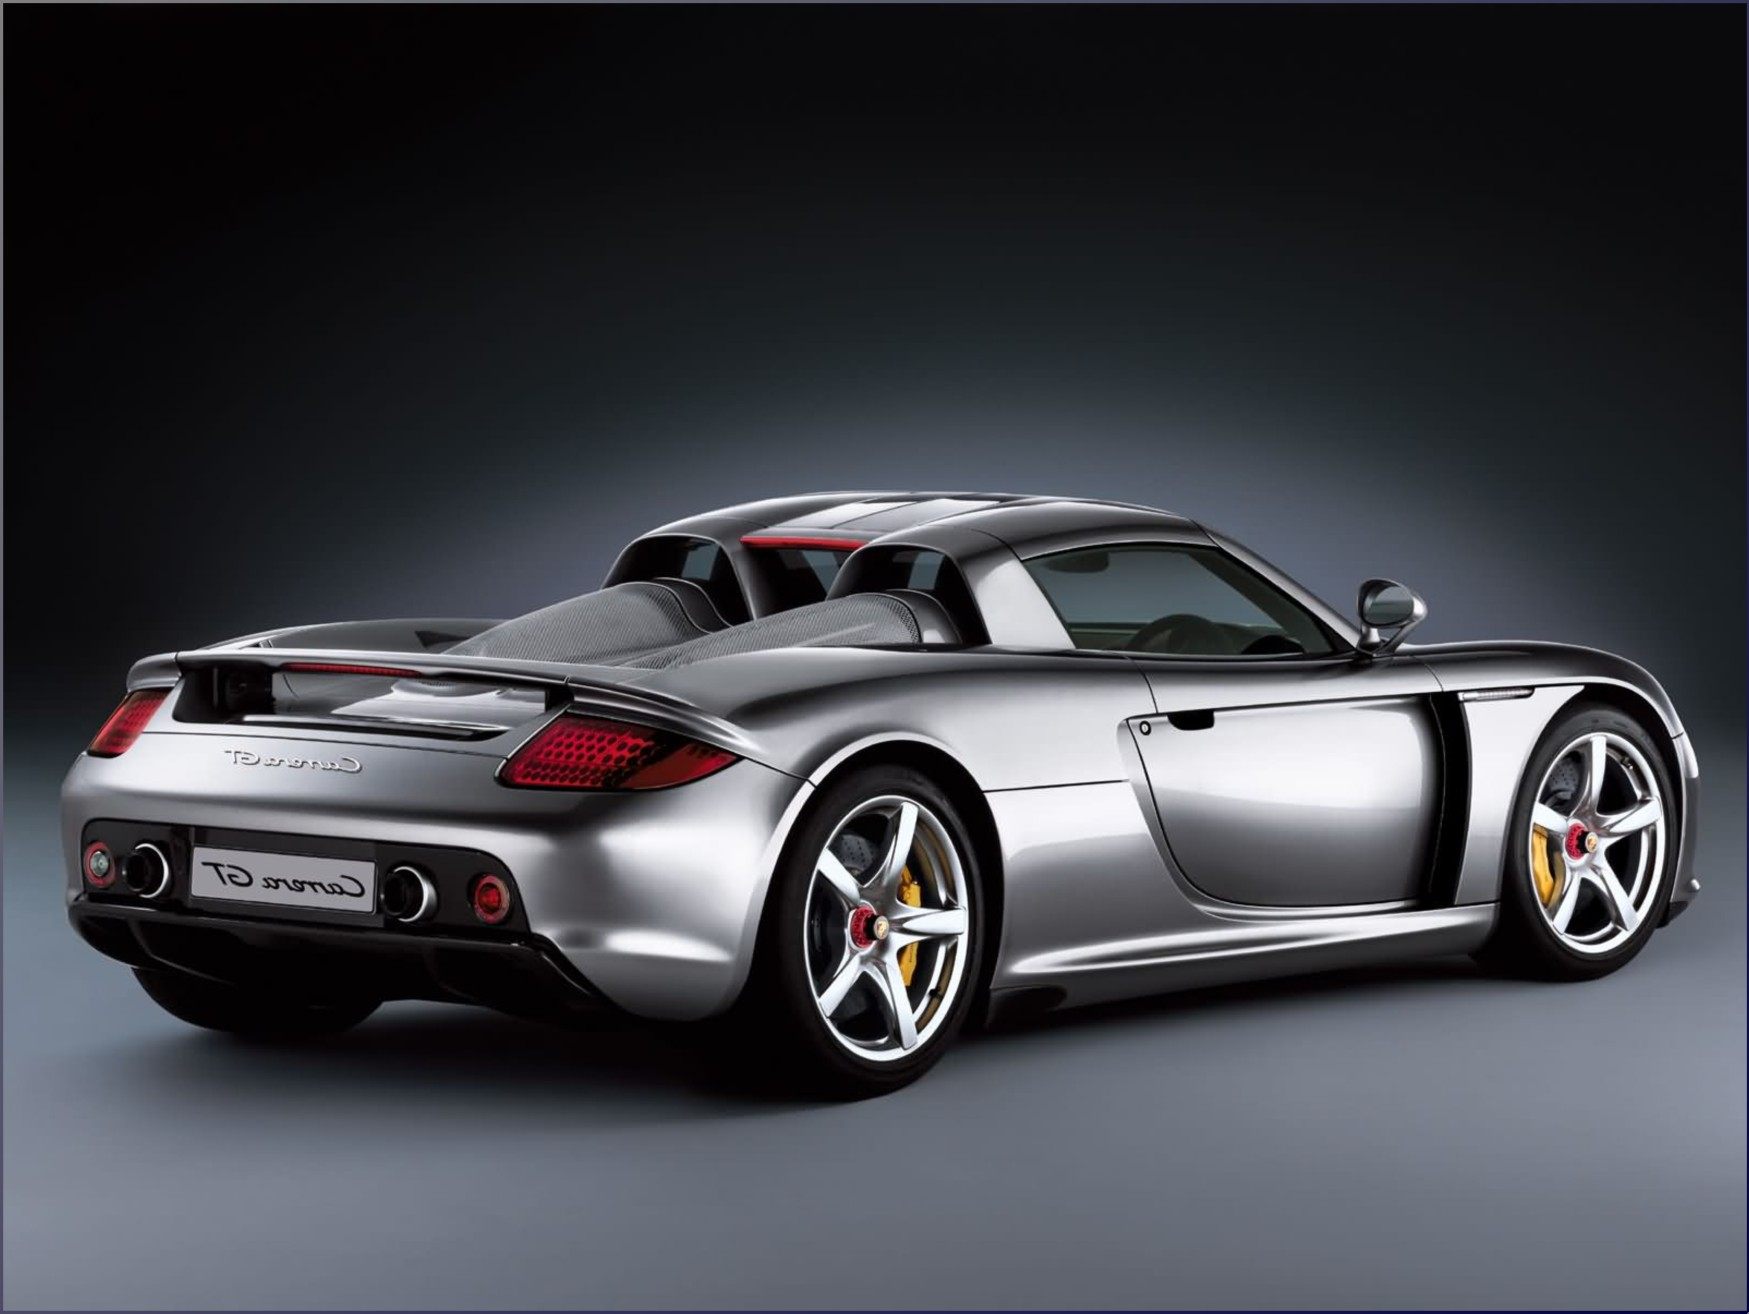 hight quality cars porsche carrera gt cars specification. Black Bedroom Furniture Sets. Home Design Ideas